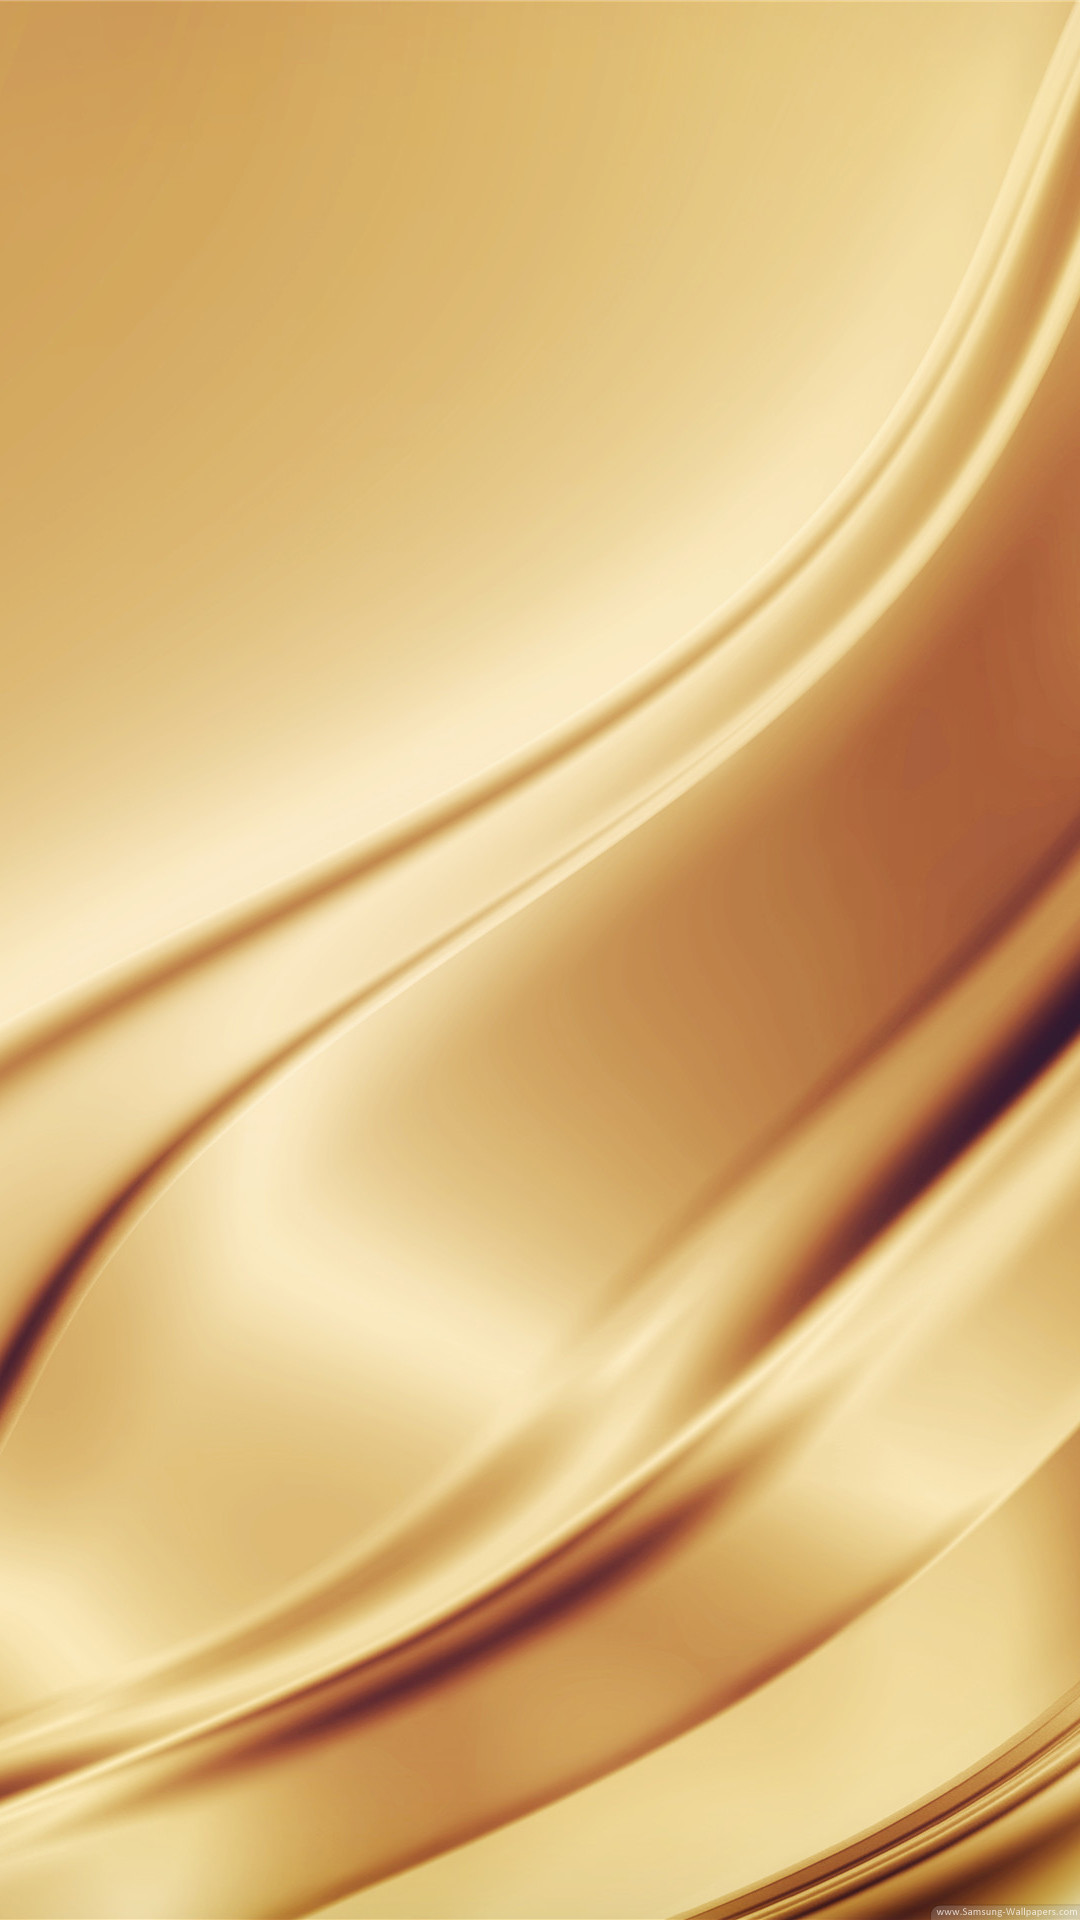 samsung wallpaper gold: Gold Wallpapers For Phone (68+ Images